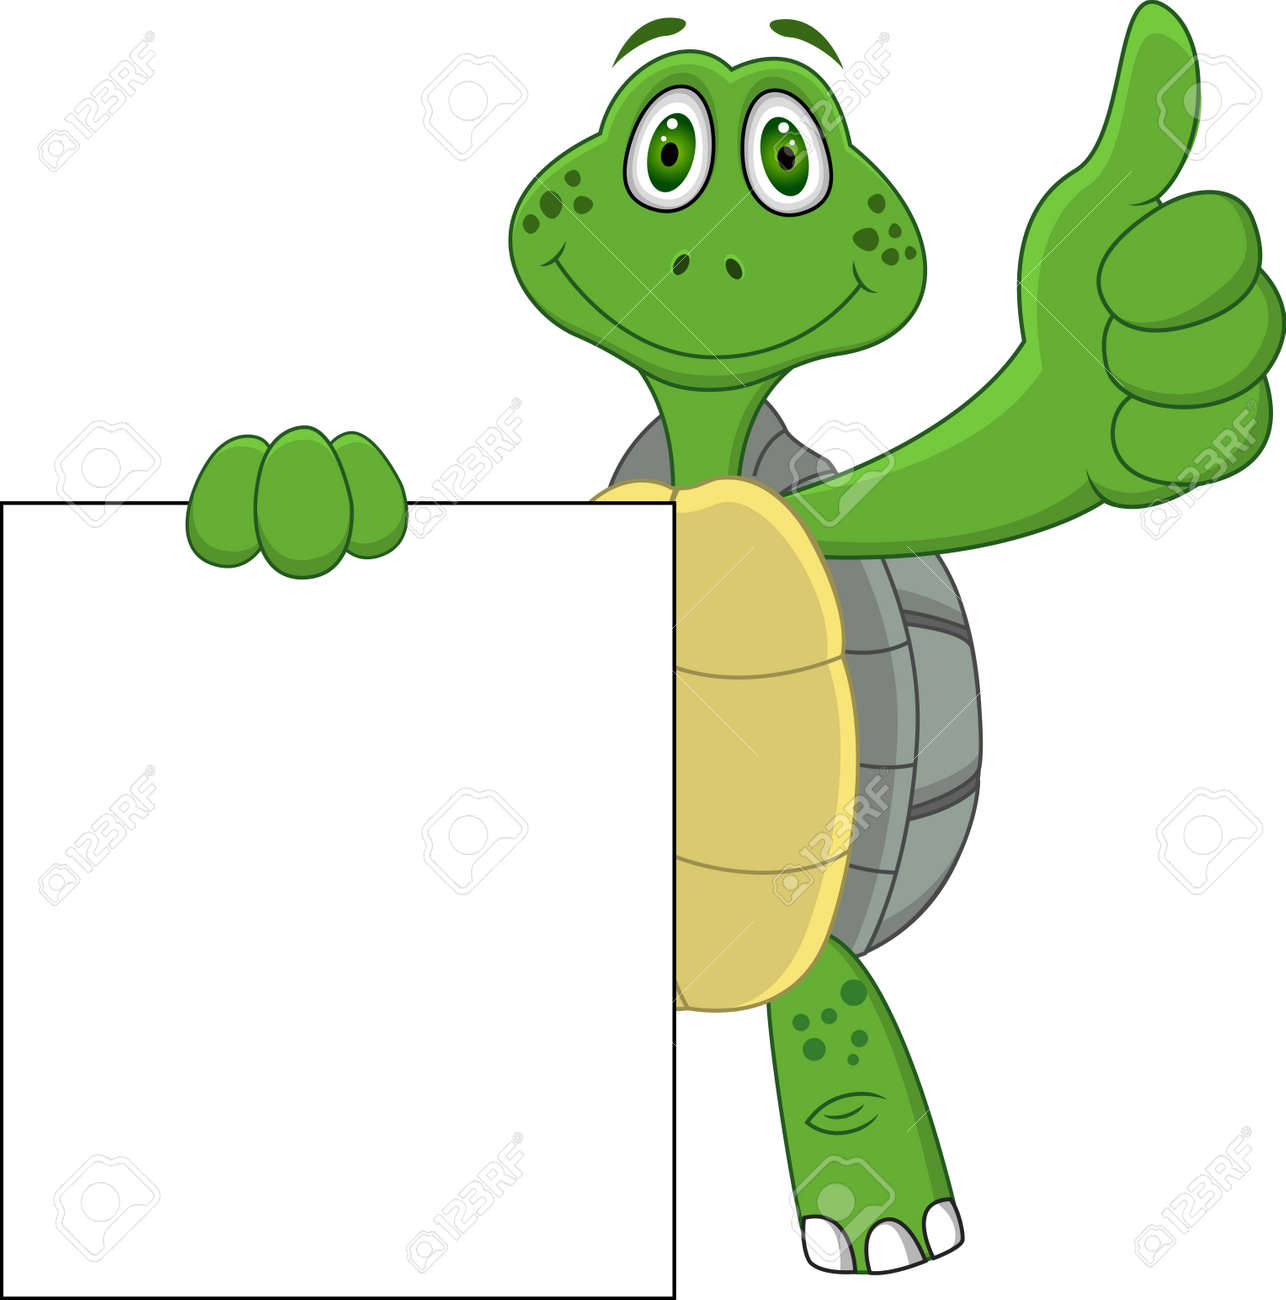 Turtle Cartoon With Thumb Up Royalty Free Cliparts Vectors And